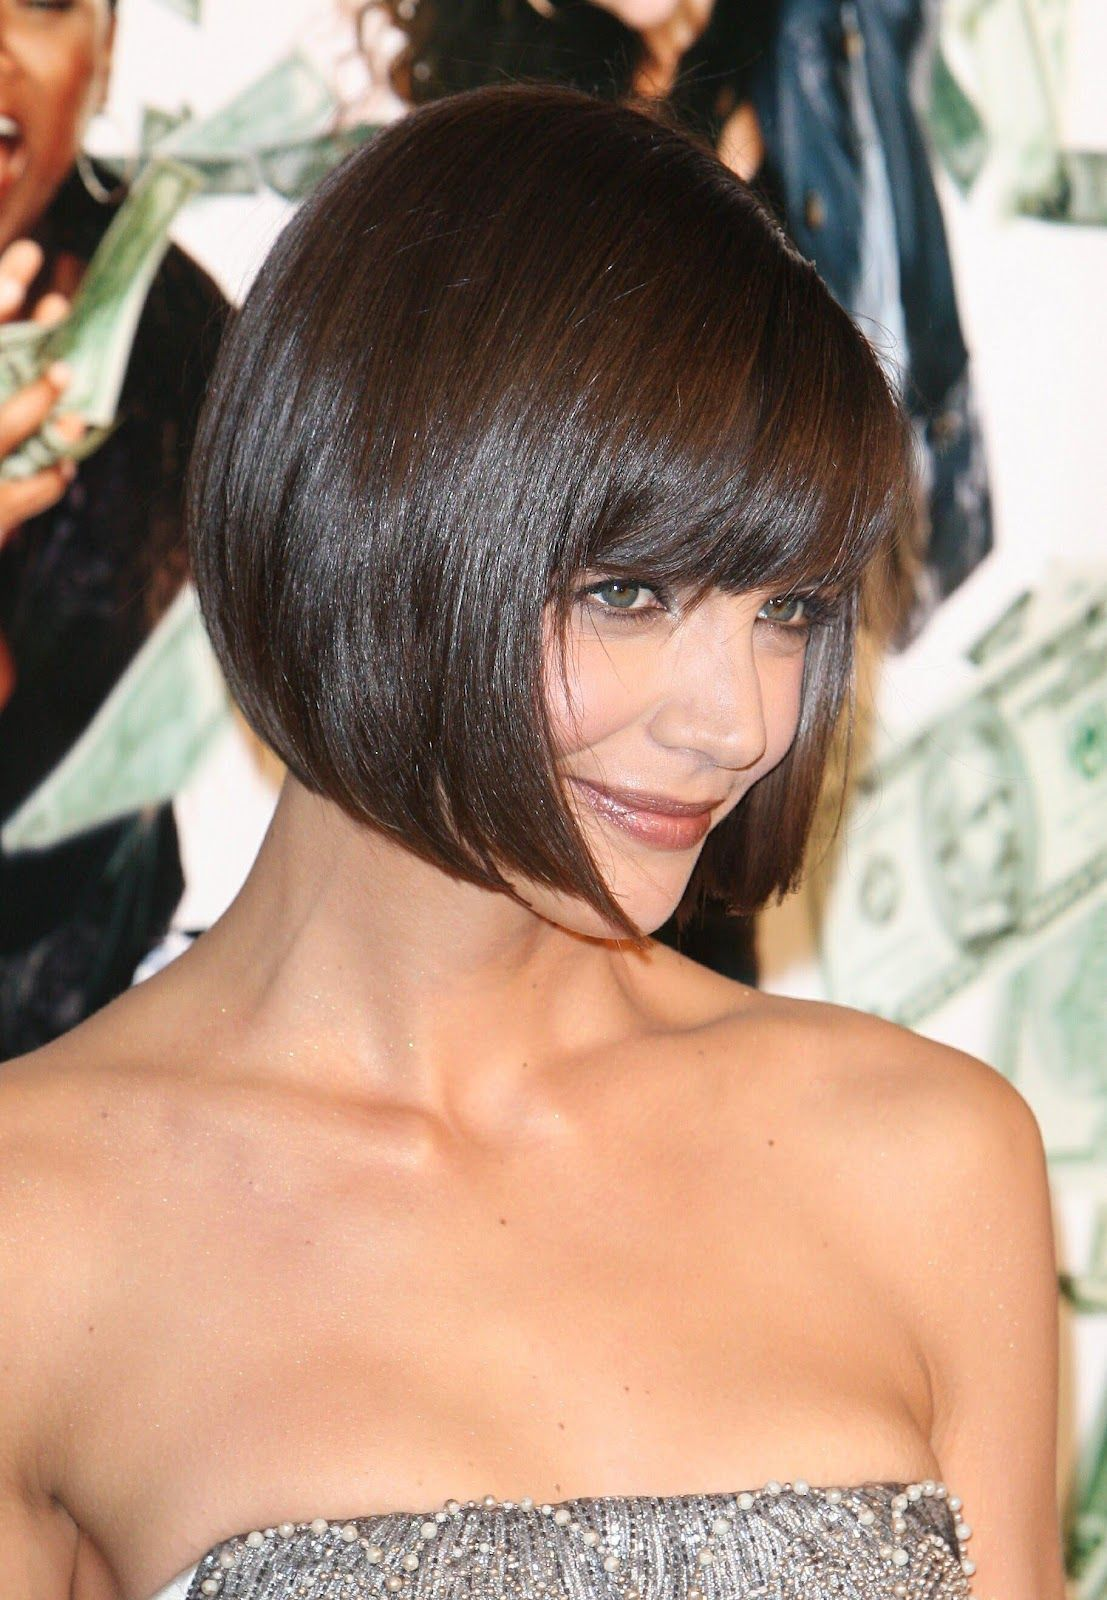 Short Haircuts And Hairstyles For Girls In 2019 in 2019 ...